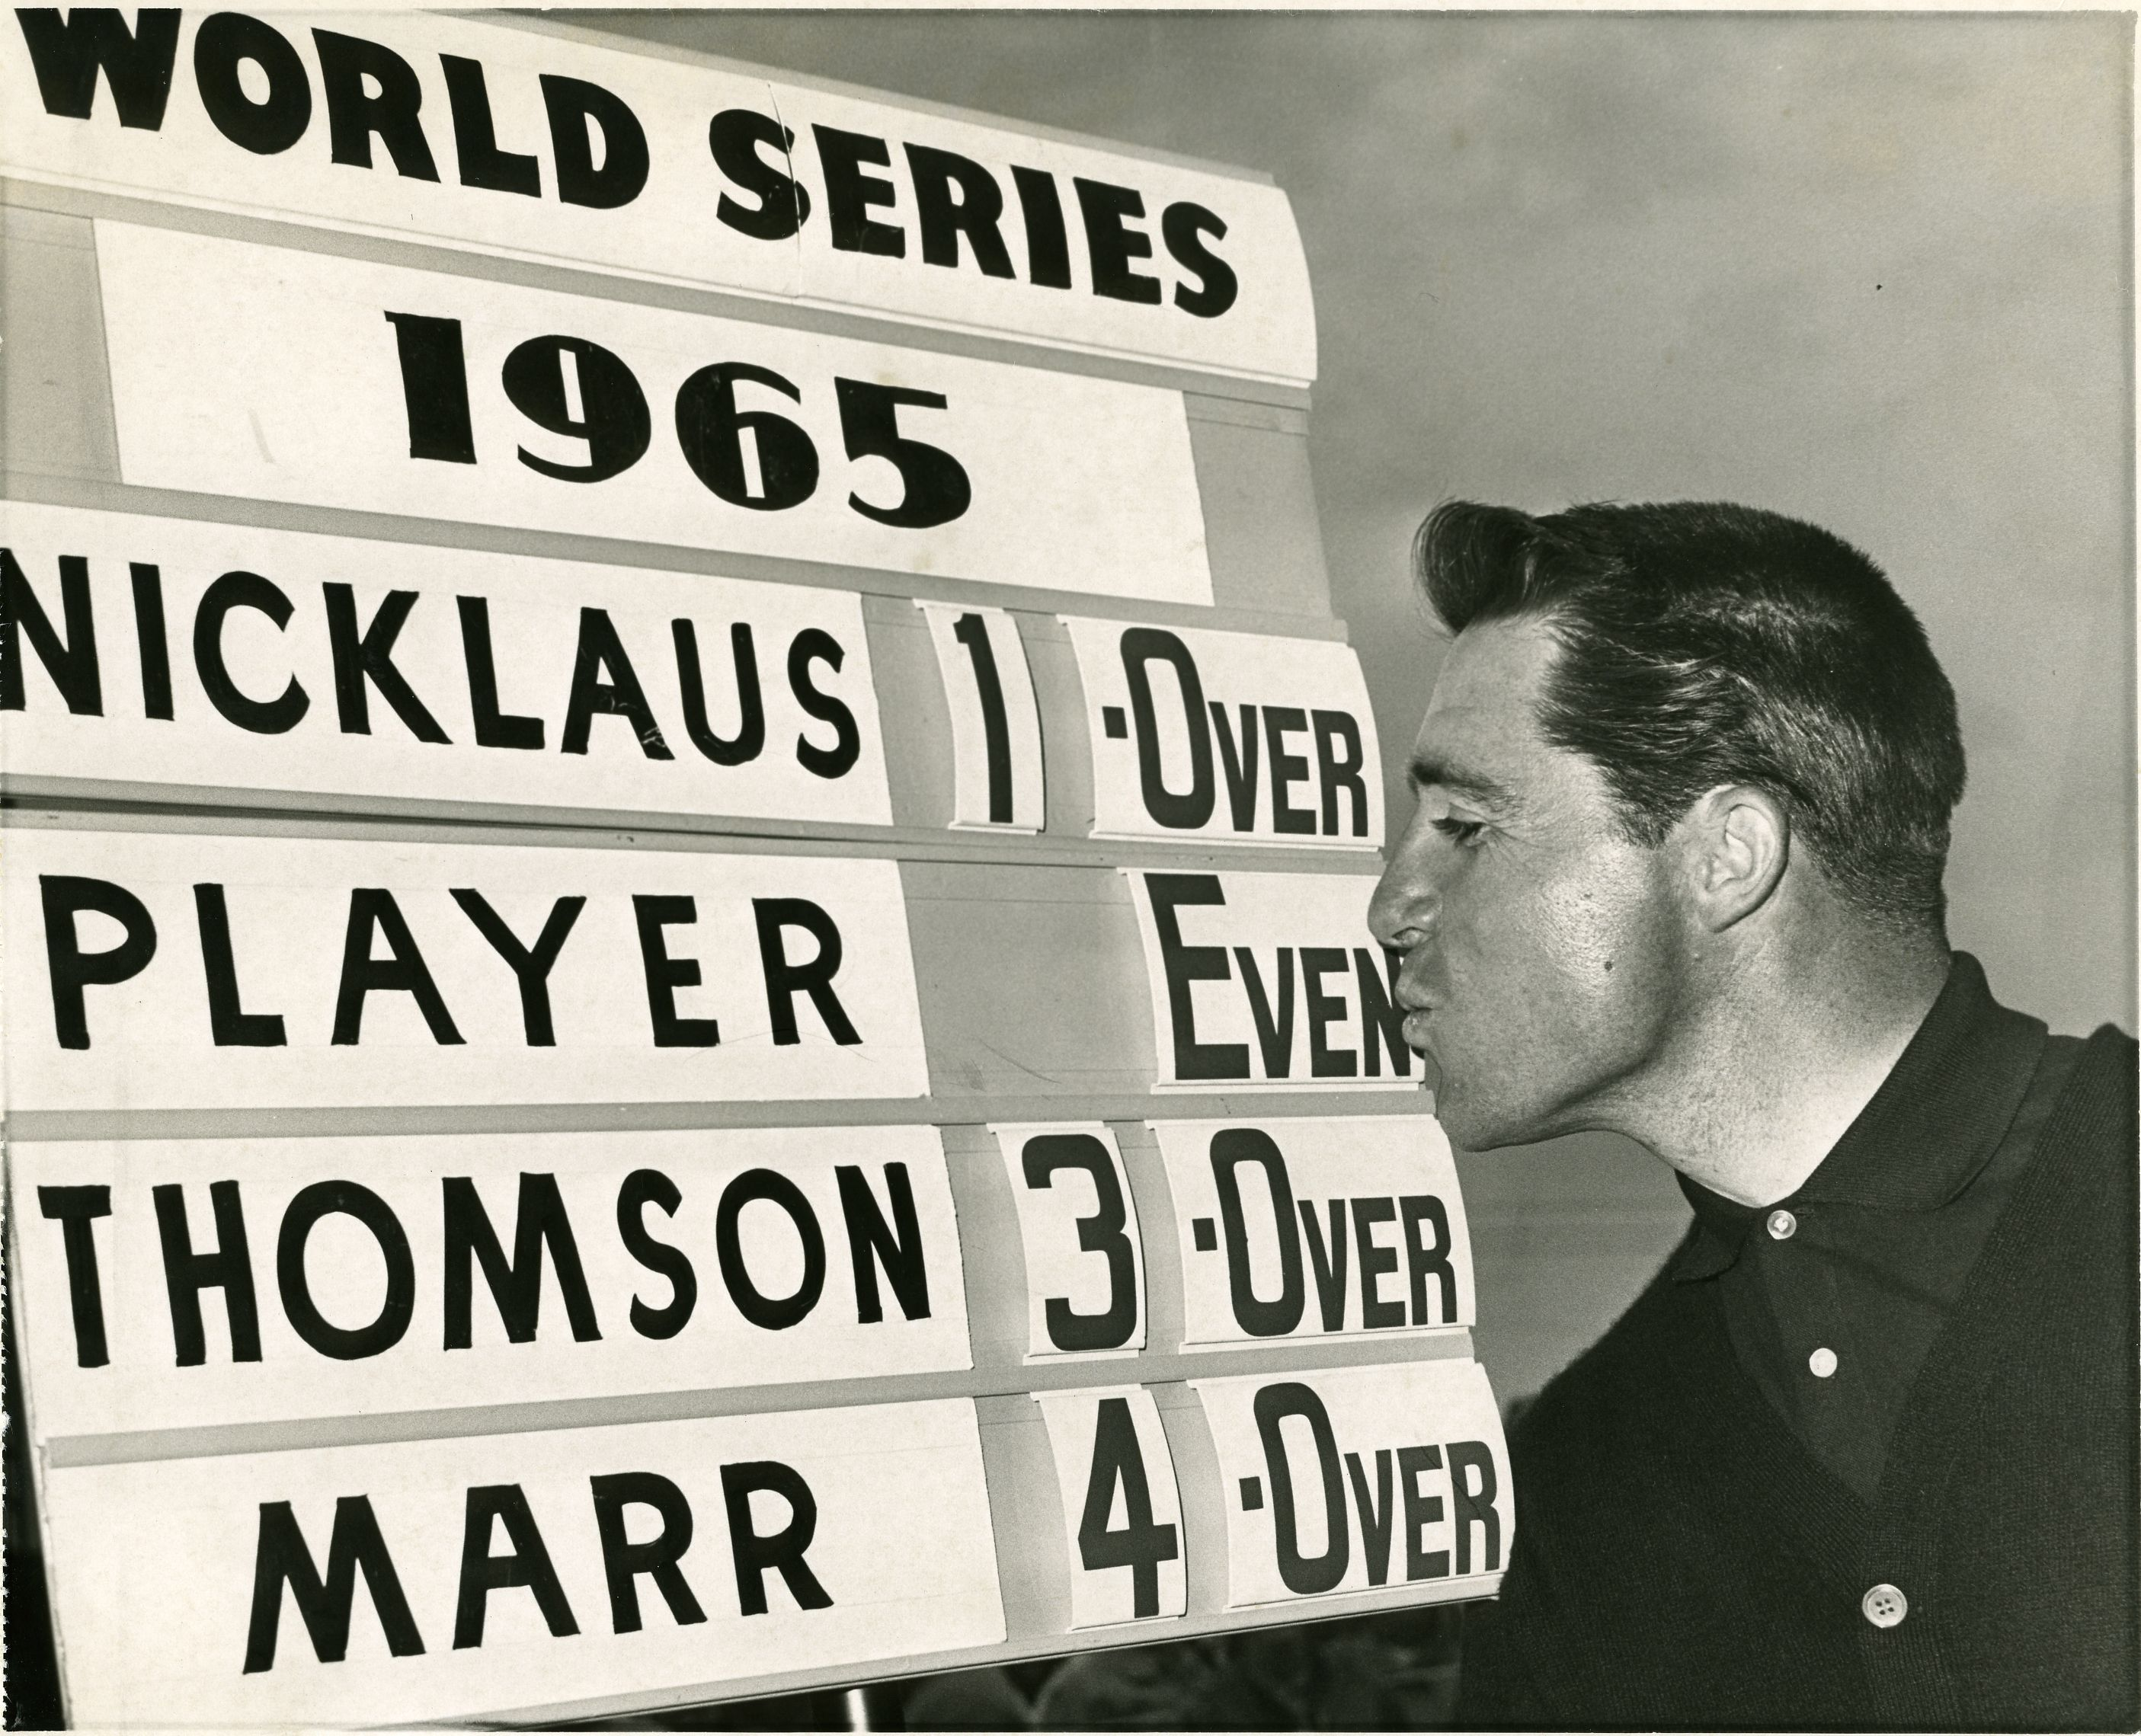 Did you know Gary Player won 3 World Series of Golf championships at Firestone in '65 '68 & '72? 1st prize was just $50K.